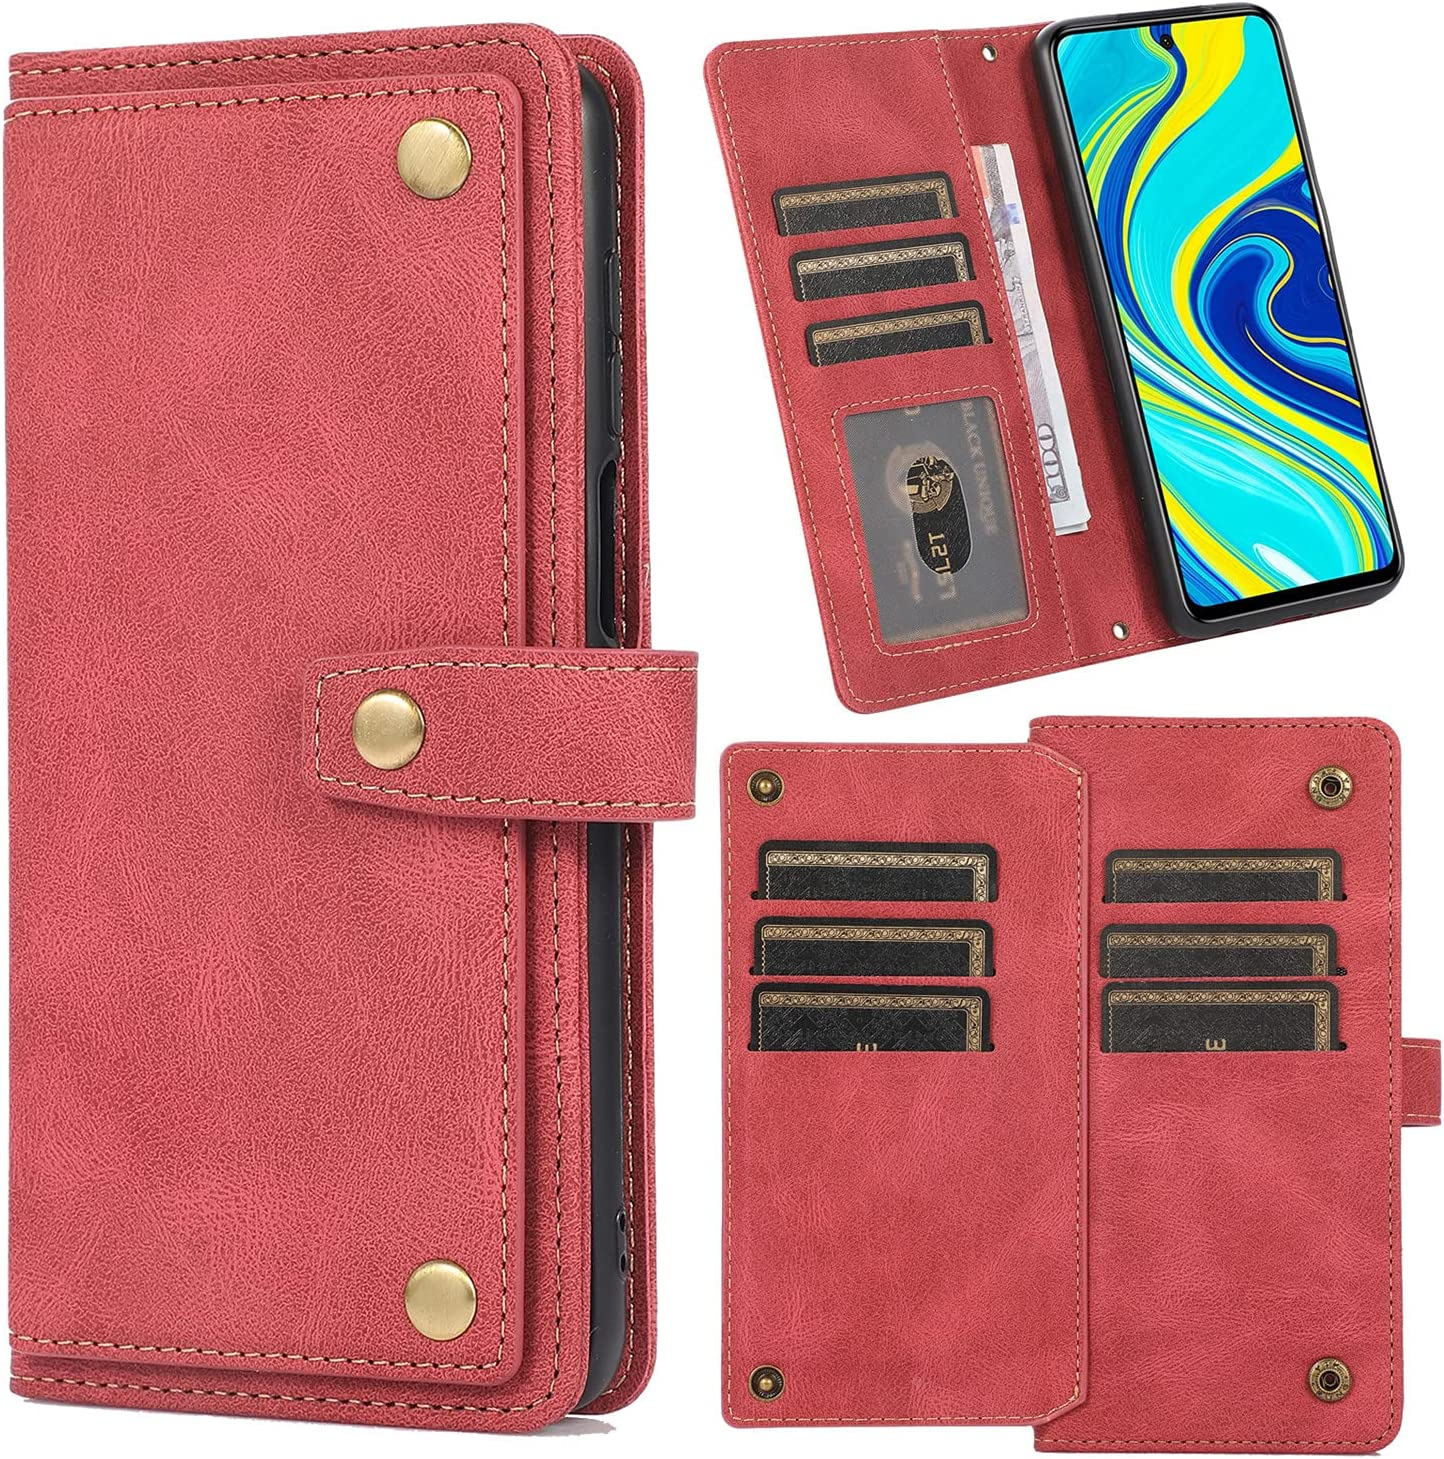 XYX Wallet Case for Samsung S7 Edge, Crossbody Chain Purse Wrist Leather Case Cover with 9 Card Slot for Galaxy S7 Edge, Red